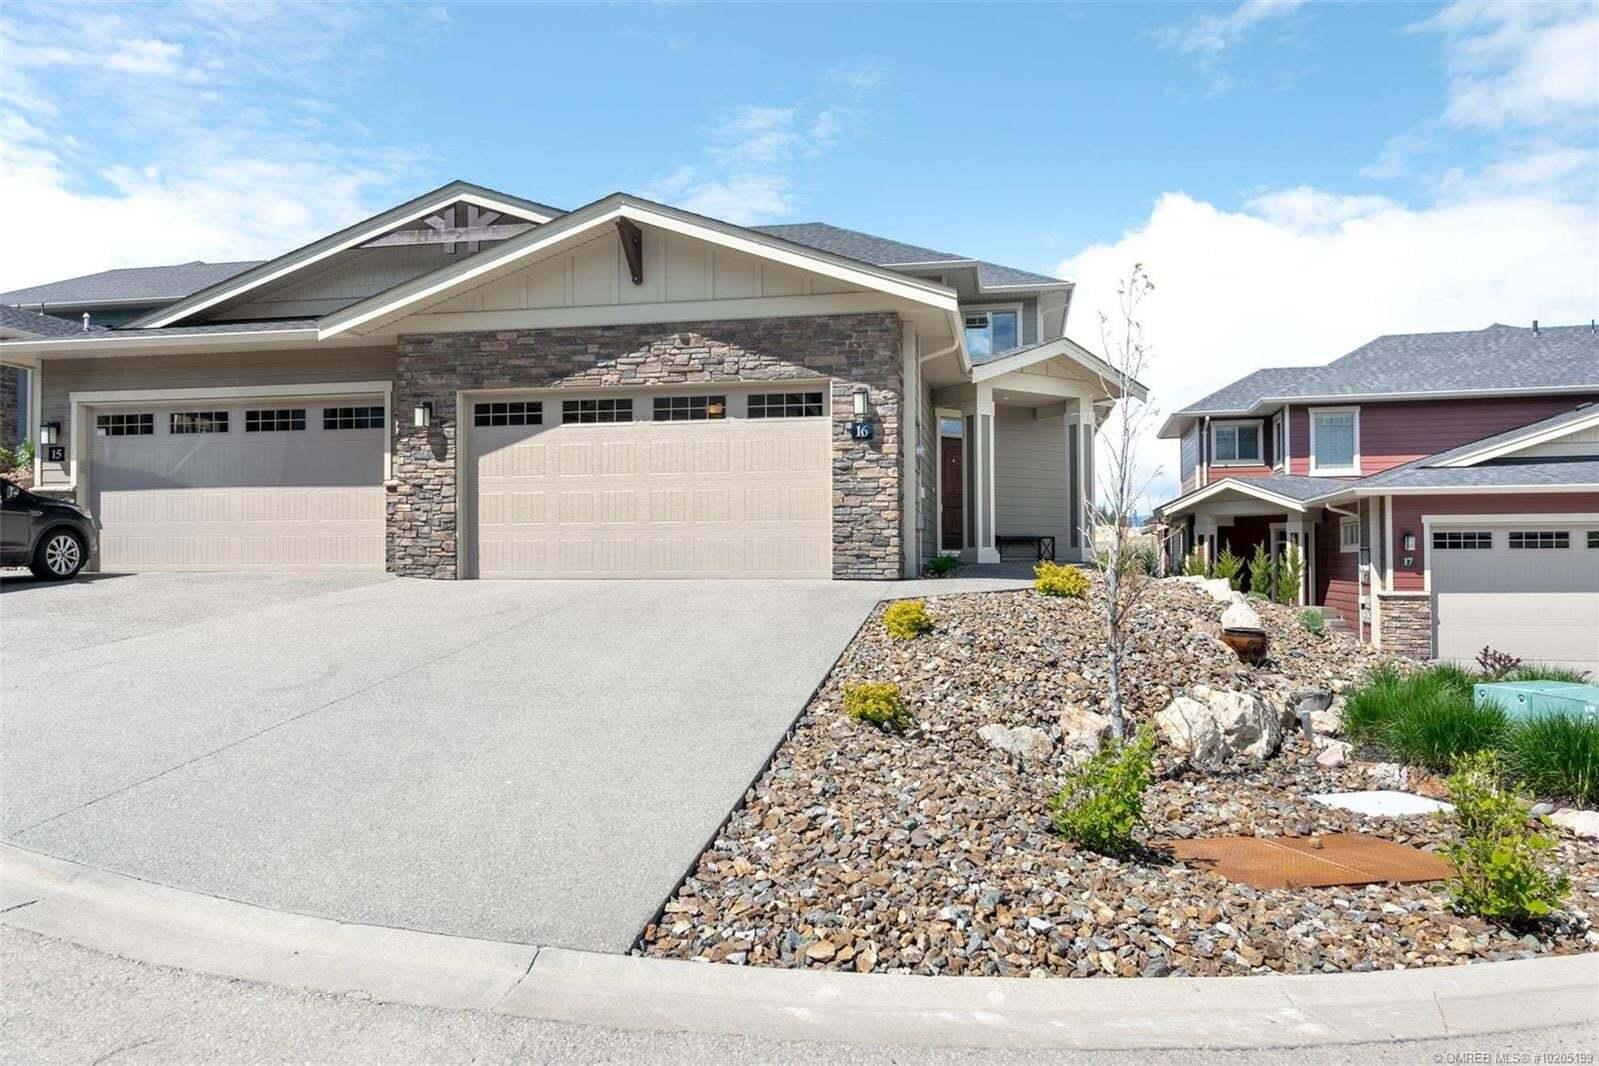 Townhouse for sale at 875 Stockley St Kelowna British Columbia - MLS: 10205199